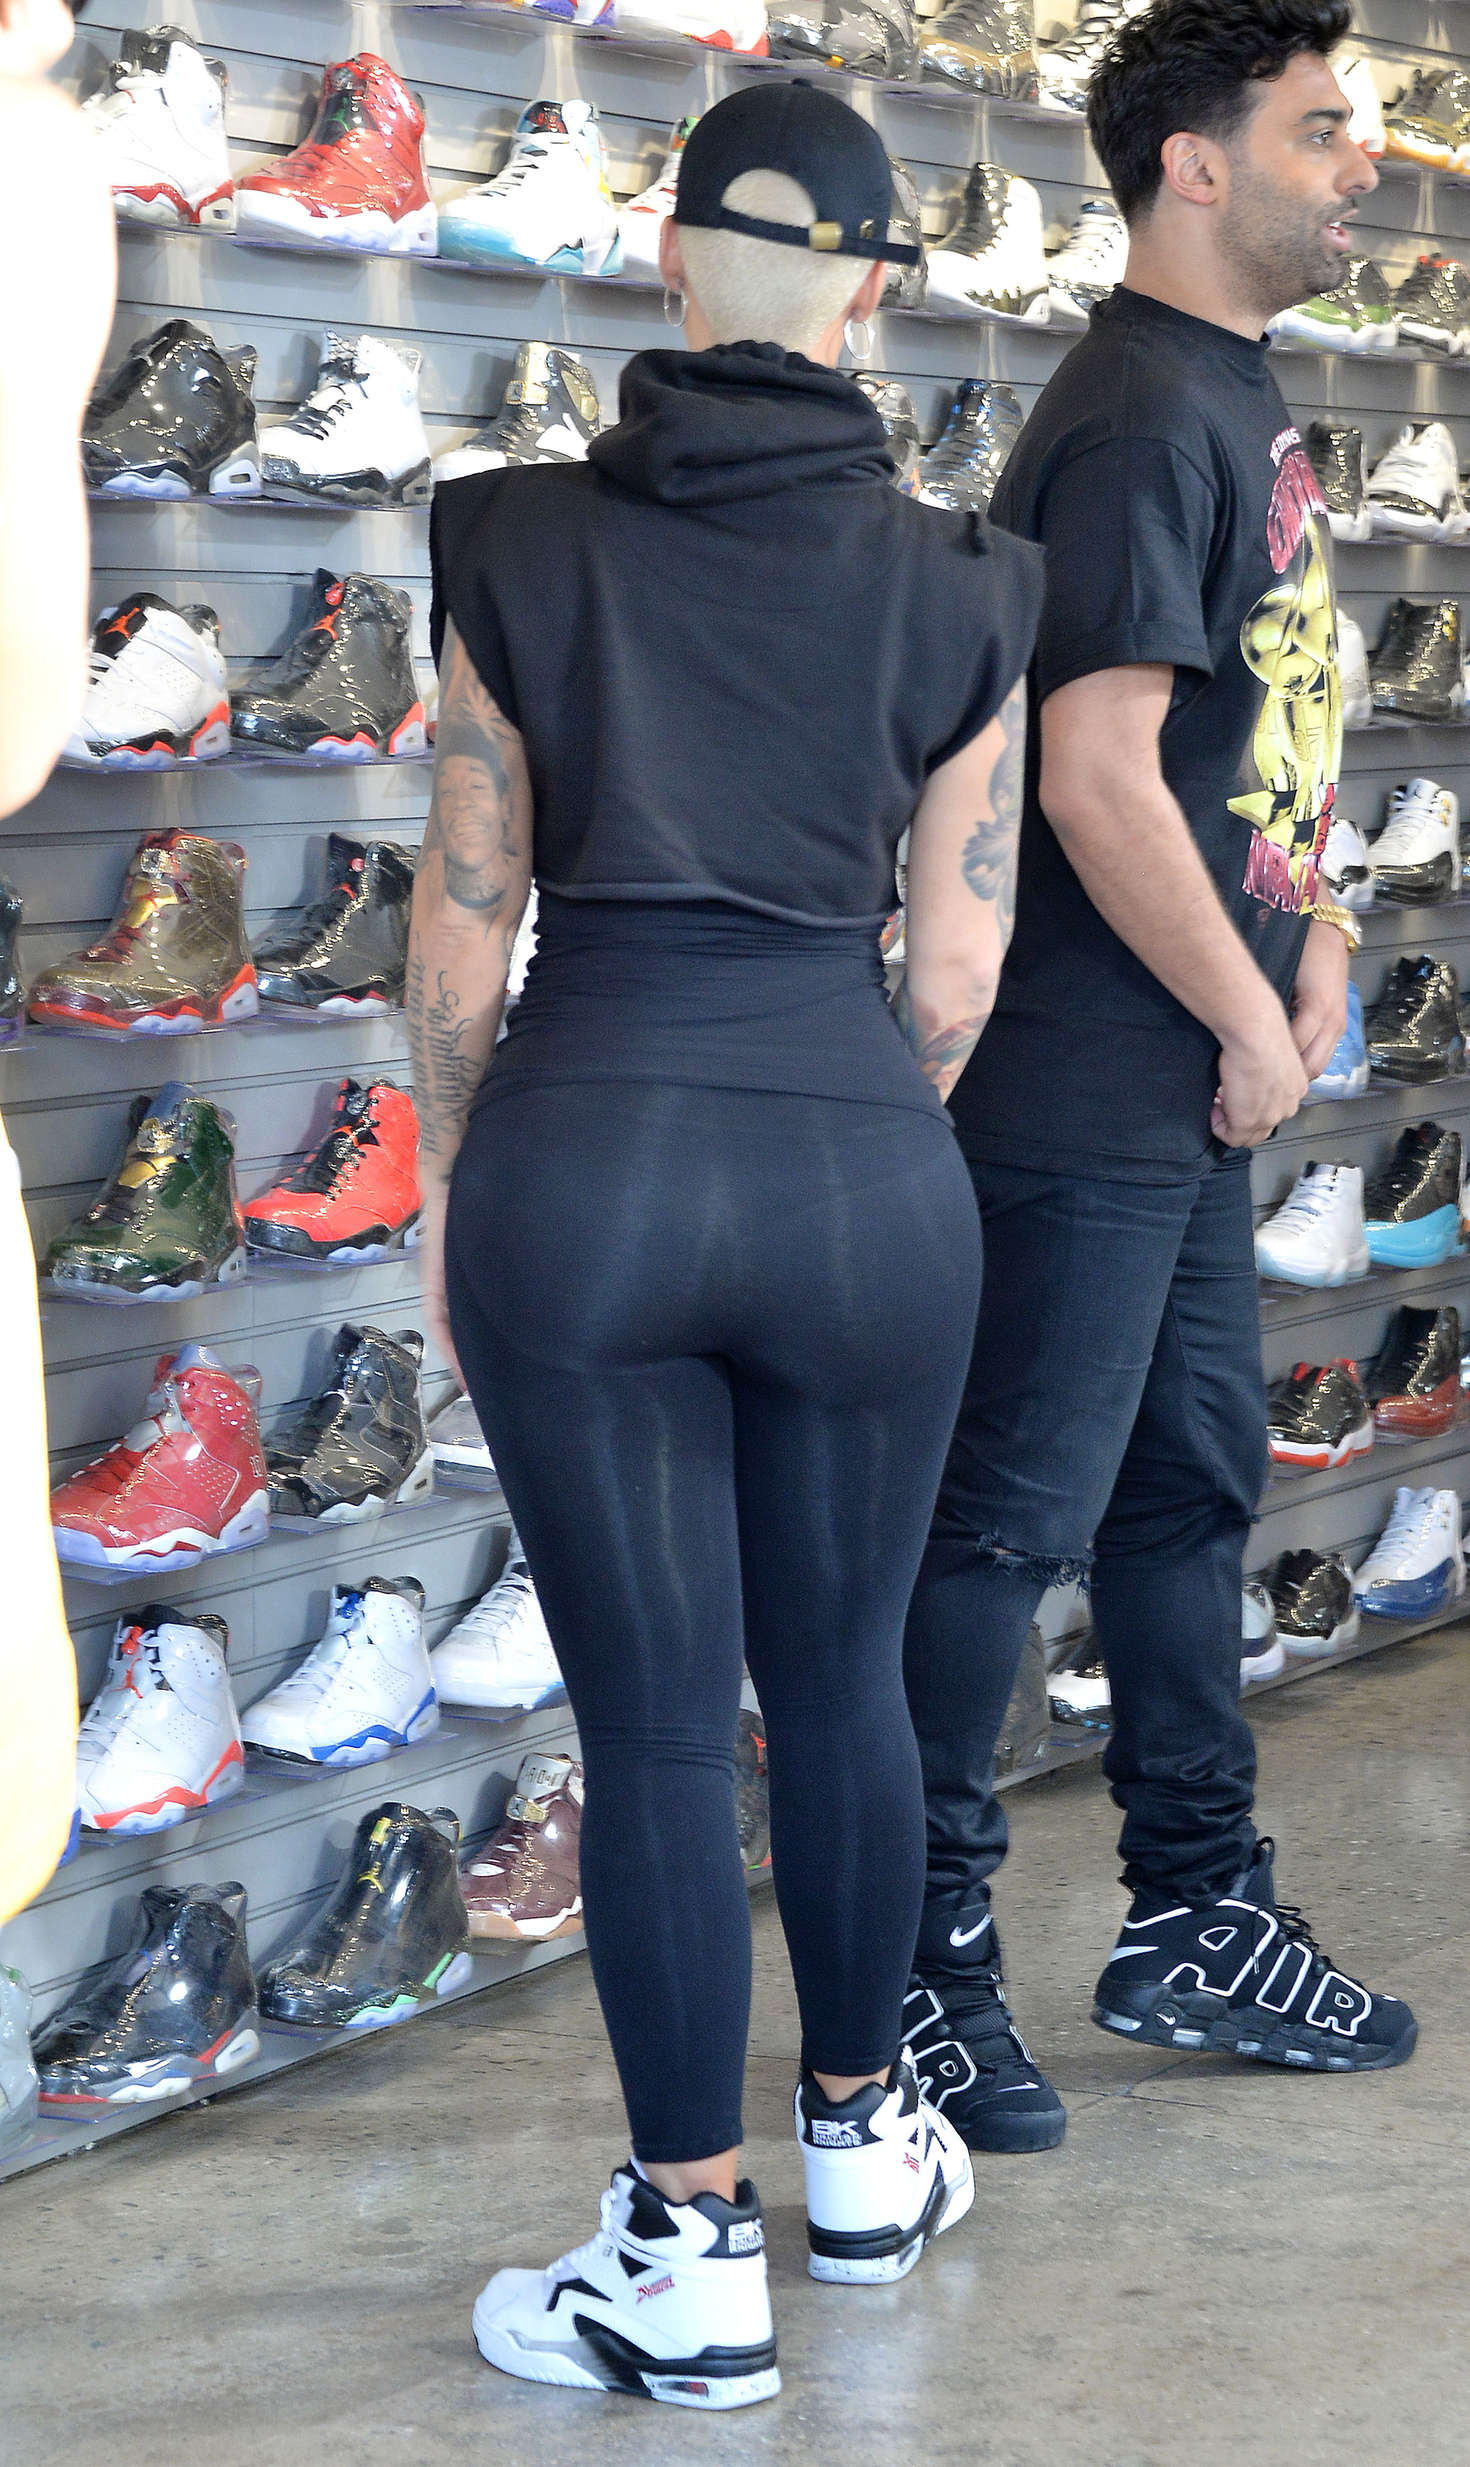 amber rose in spandex shopping in west hollywood